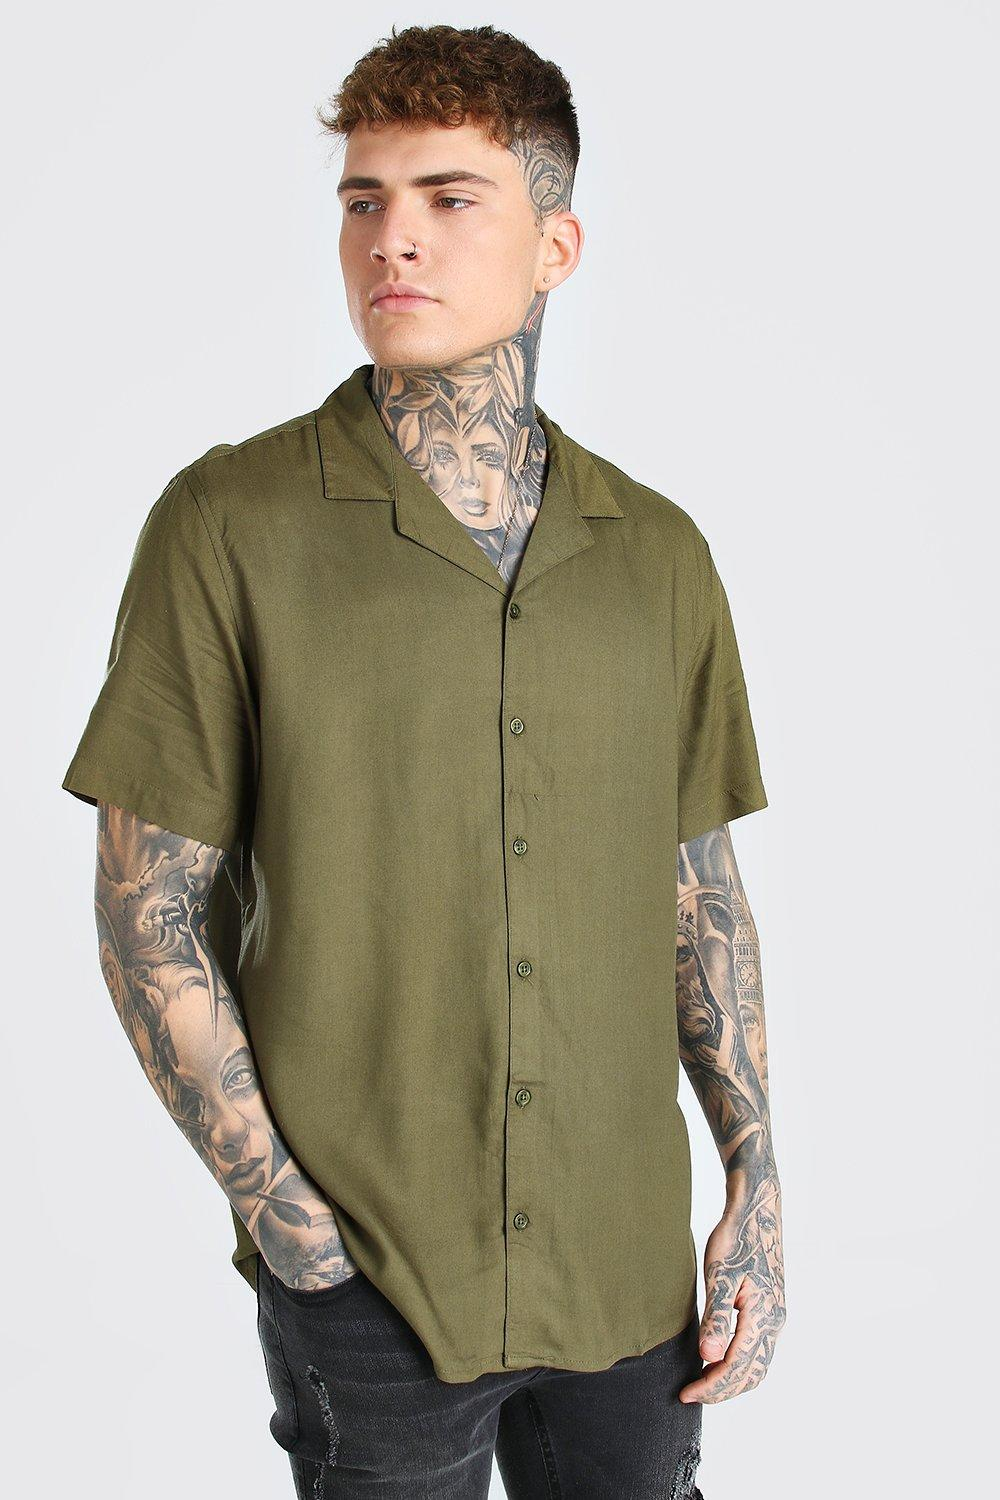 Mens Vintage Shirts – Casual, Dress, T-shirts, Polos Mens Short Sleeve Viscose Shirt With Revere Collar - Green $10.00 AT vintagedancer.com